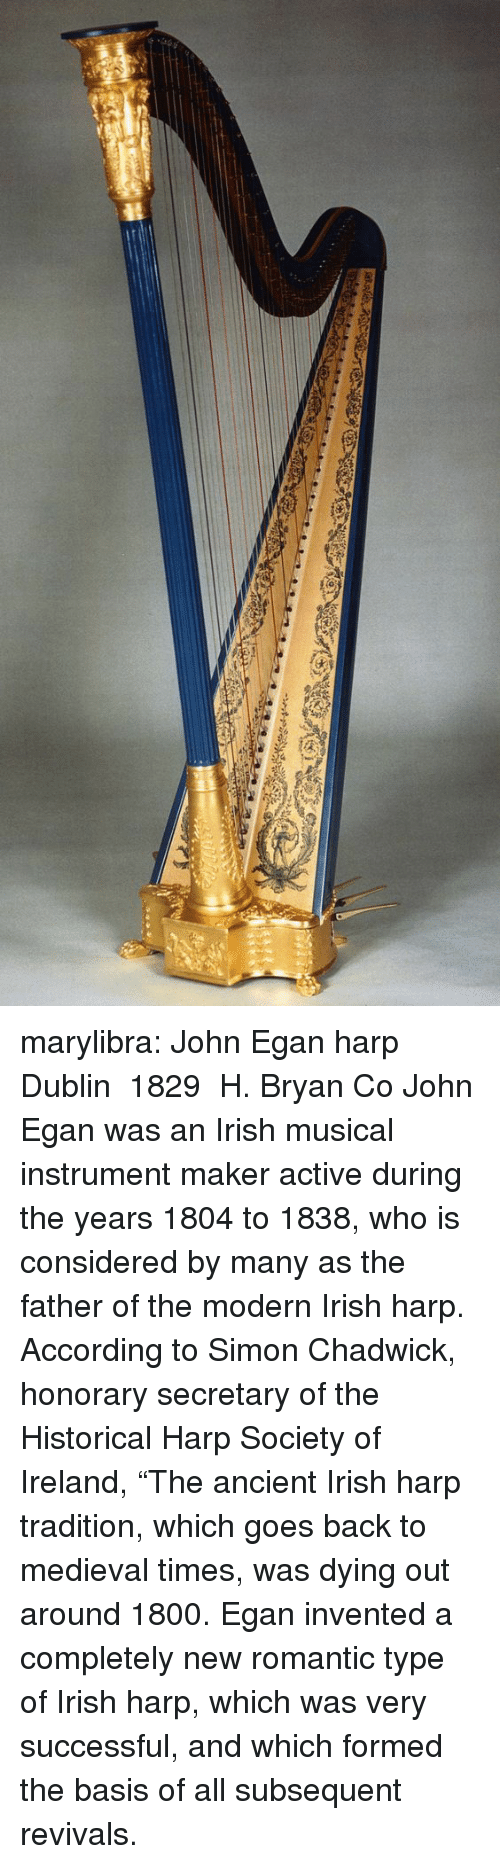 "Irish, Tumblr, and Blog: marylibra: John Egan harp  Dublin  1829  H. Bryan  Co John Egan was an Irish musical instrument maker active during the years 1804 to 1838, who is considered by many as the father of the modern Irish harp. According to Simon Chadwick, honorary secretary of the Historical Harp Society of Ireland, ""The ancient Irish harp tradition, which goes back to medieval times, was dying out around 1800. Egan invented a completely new romantic type of Irish harp, which was very successful, and which formed the basis of all subsequent revivals."